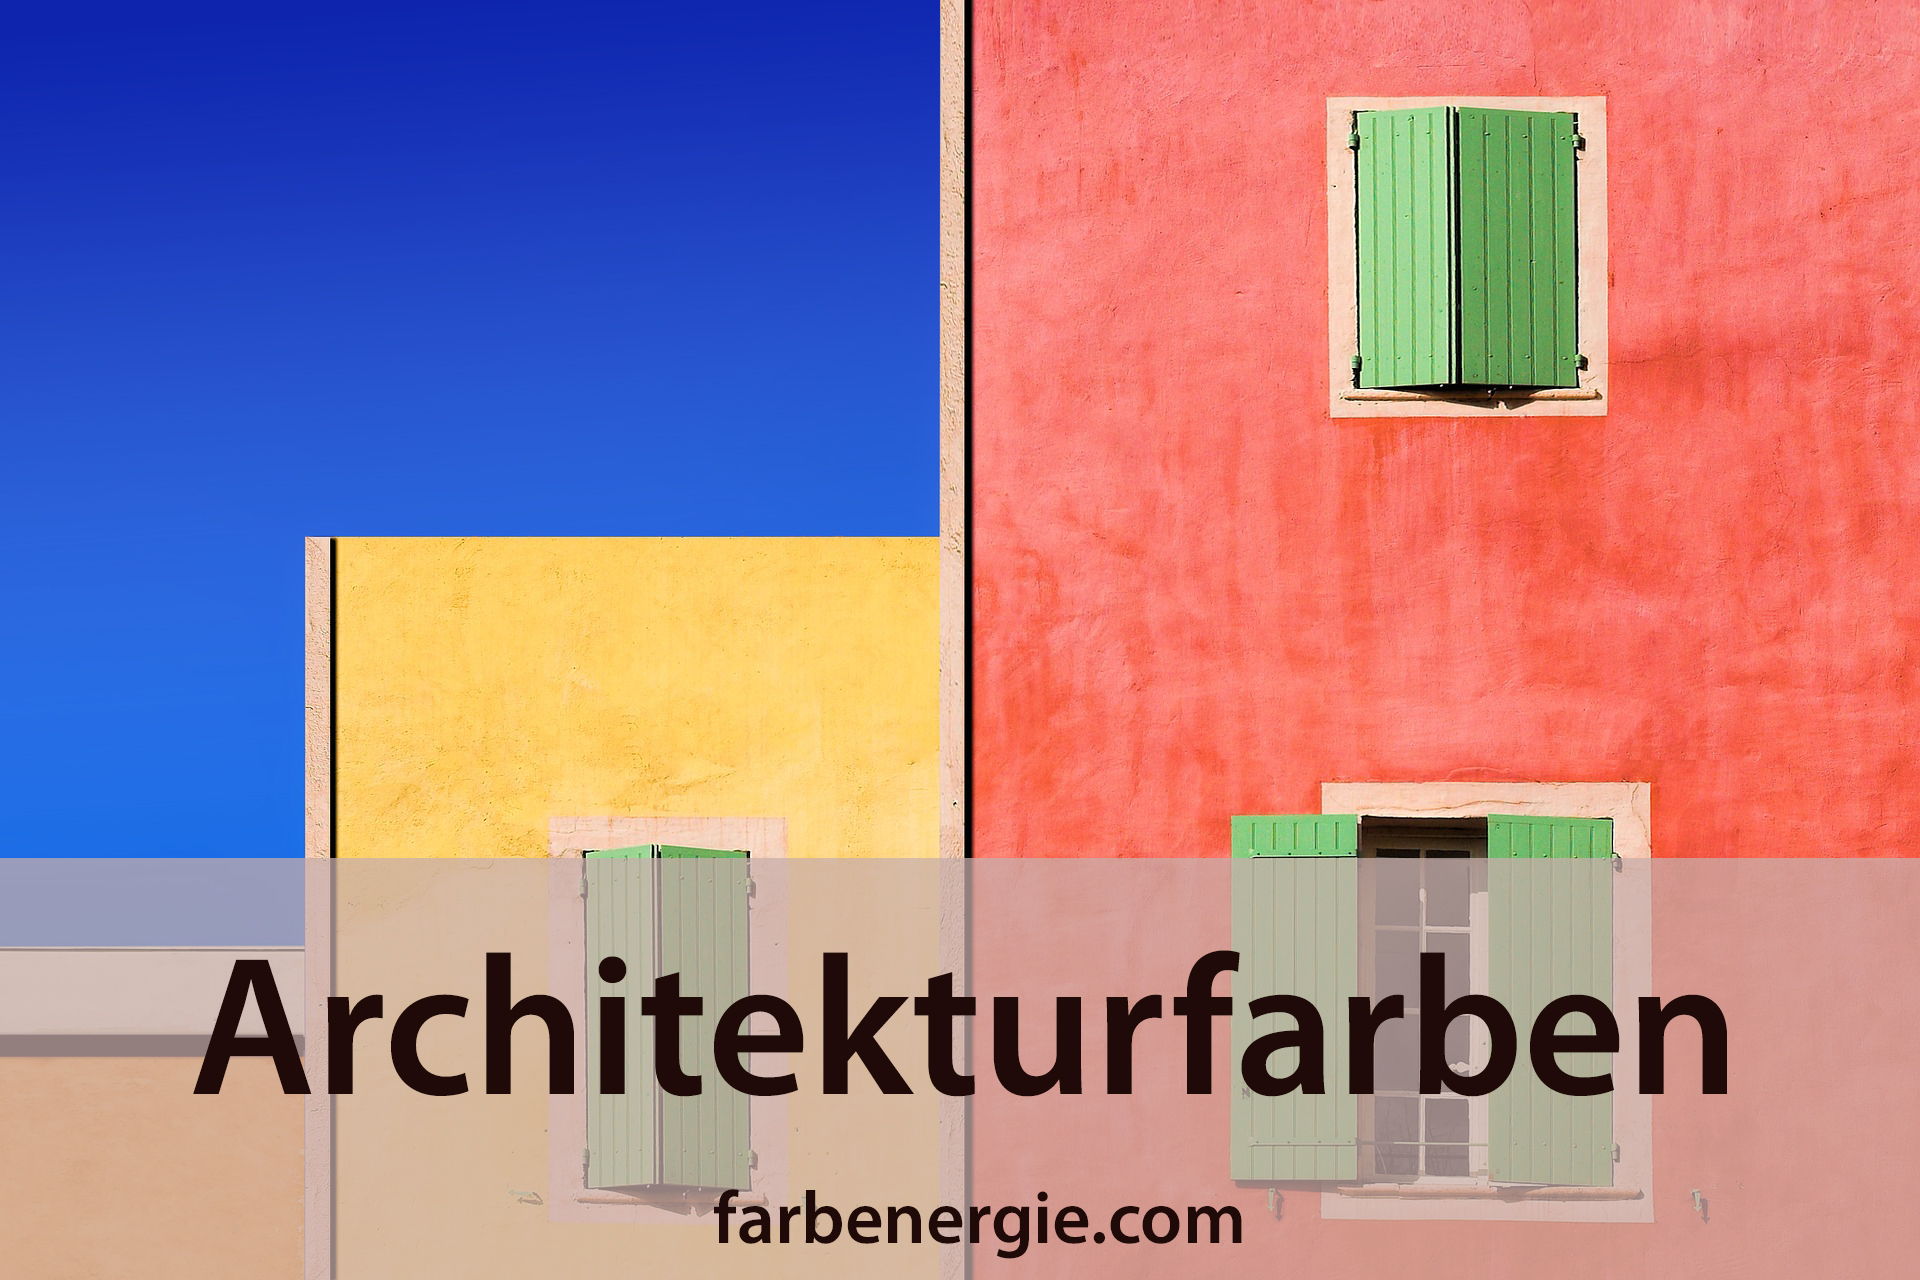 architekturfarben-farben-architektur